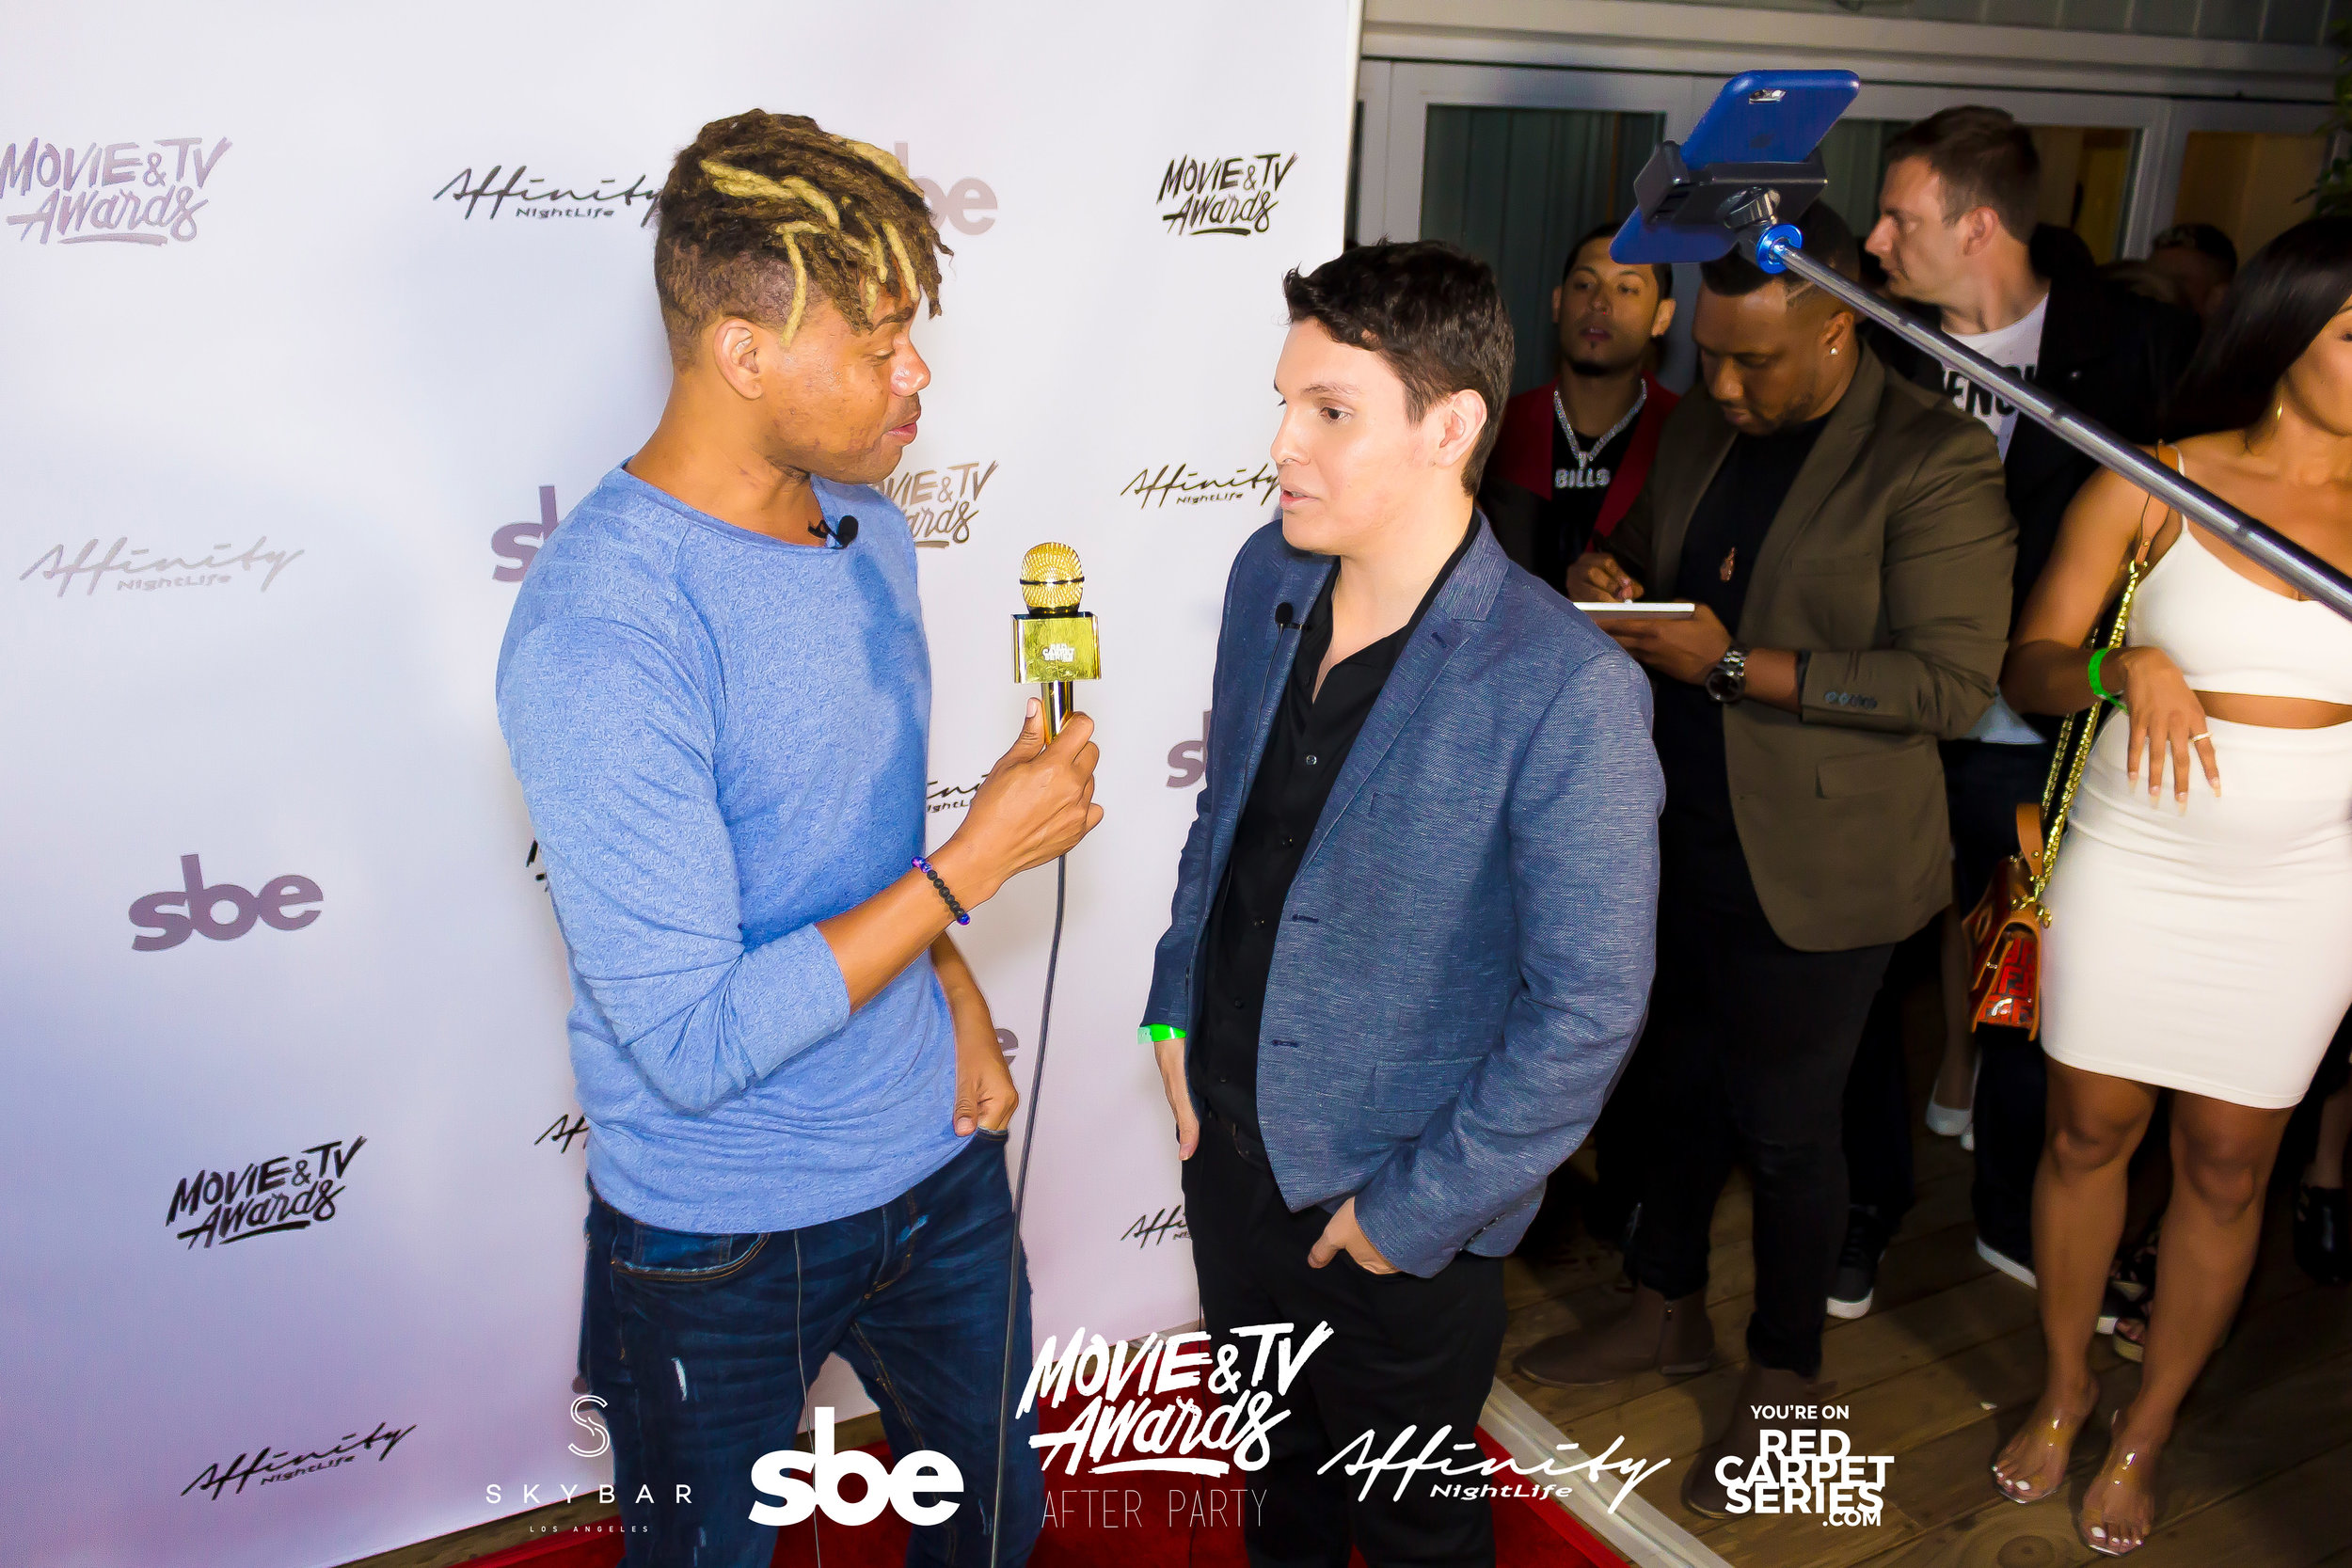 Affinity Nightlife MTV Movie & TV Awards After Party - Skybar at Mondrian - 06-15-19 - Vol. 1_51.jpg